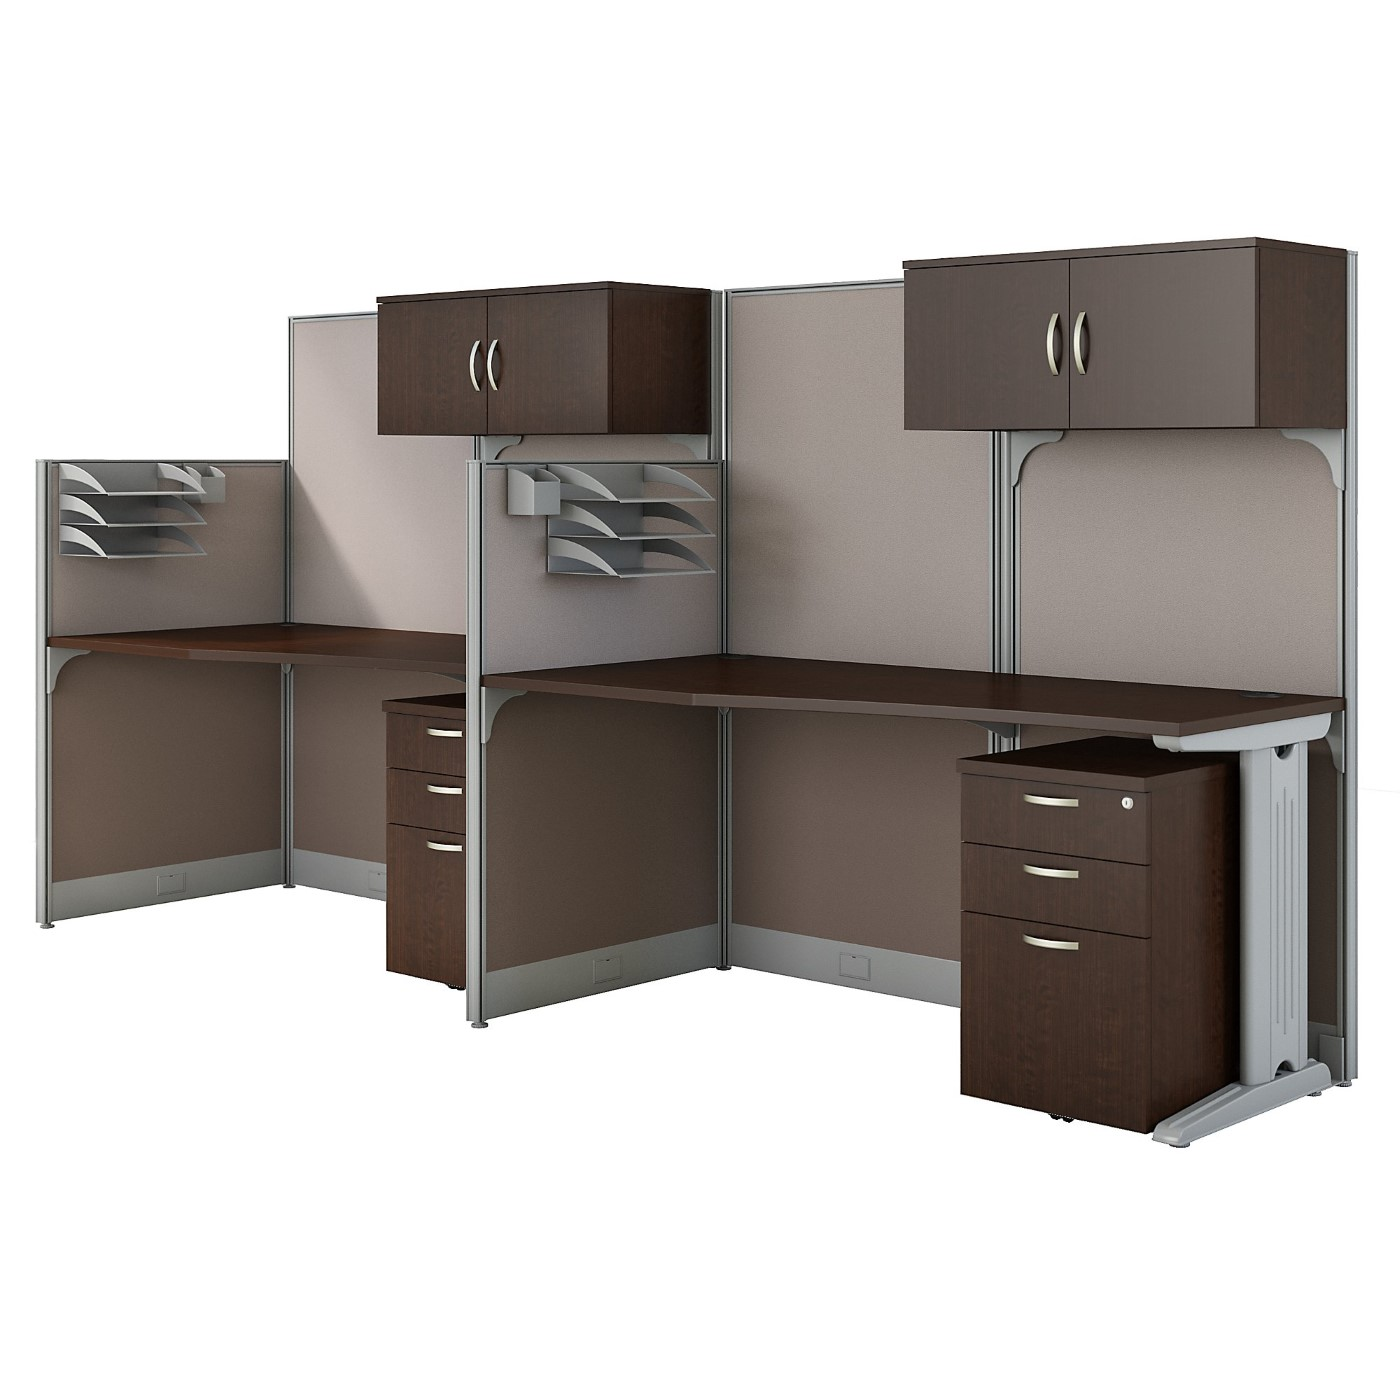 BUSH BUSINESS FURNITURE OFFICE IN AN HOUR 2 PERSON CUBICLE WORKSTATIONS. FREE SHIPPING SALE DEDUCT 10% MORE ENTER '10percent' IN COUPON CODE BOX WHILE CHECKING OUT. ENDS 5-31-20.